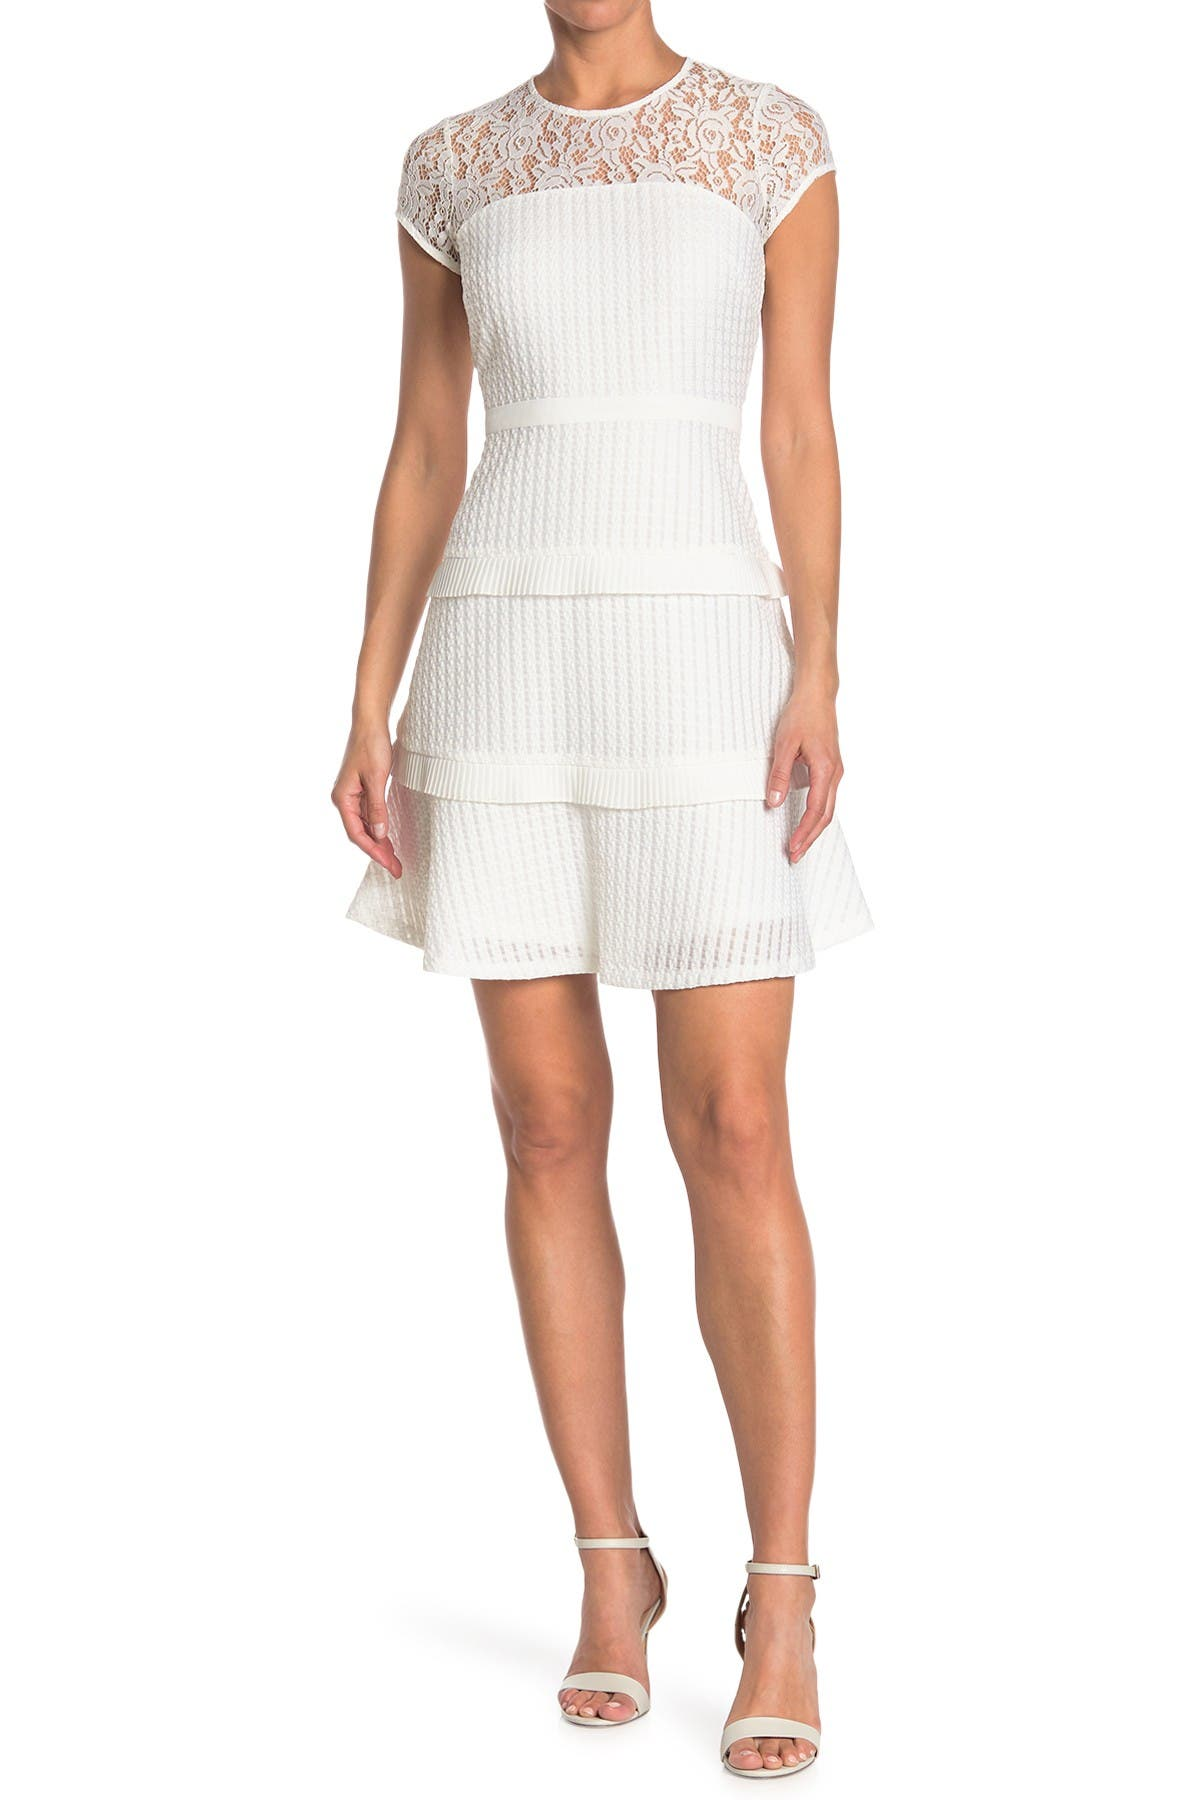 Image of Kensie Illusion Neck Tiered Ruffle Dress